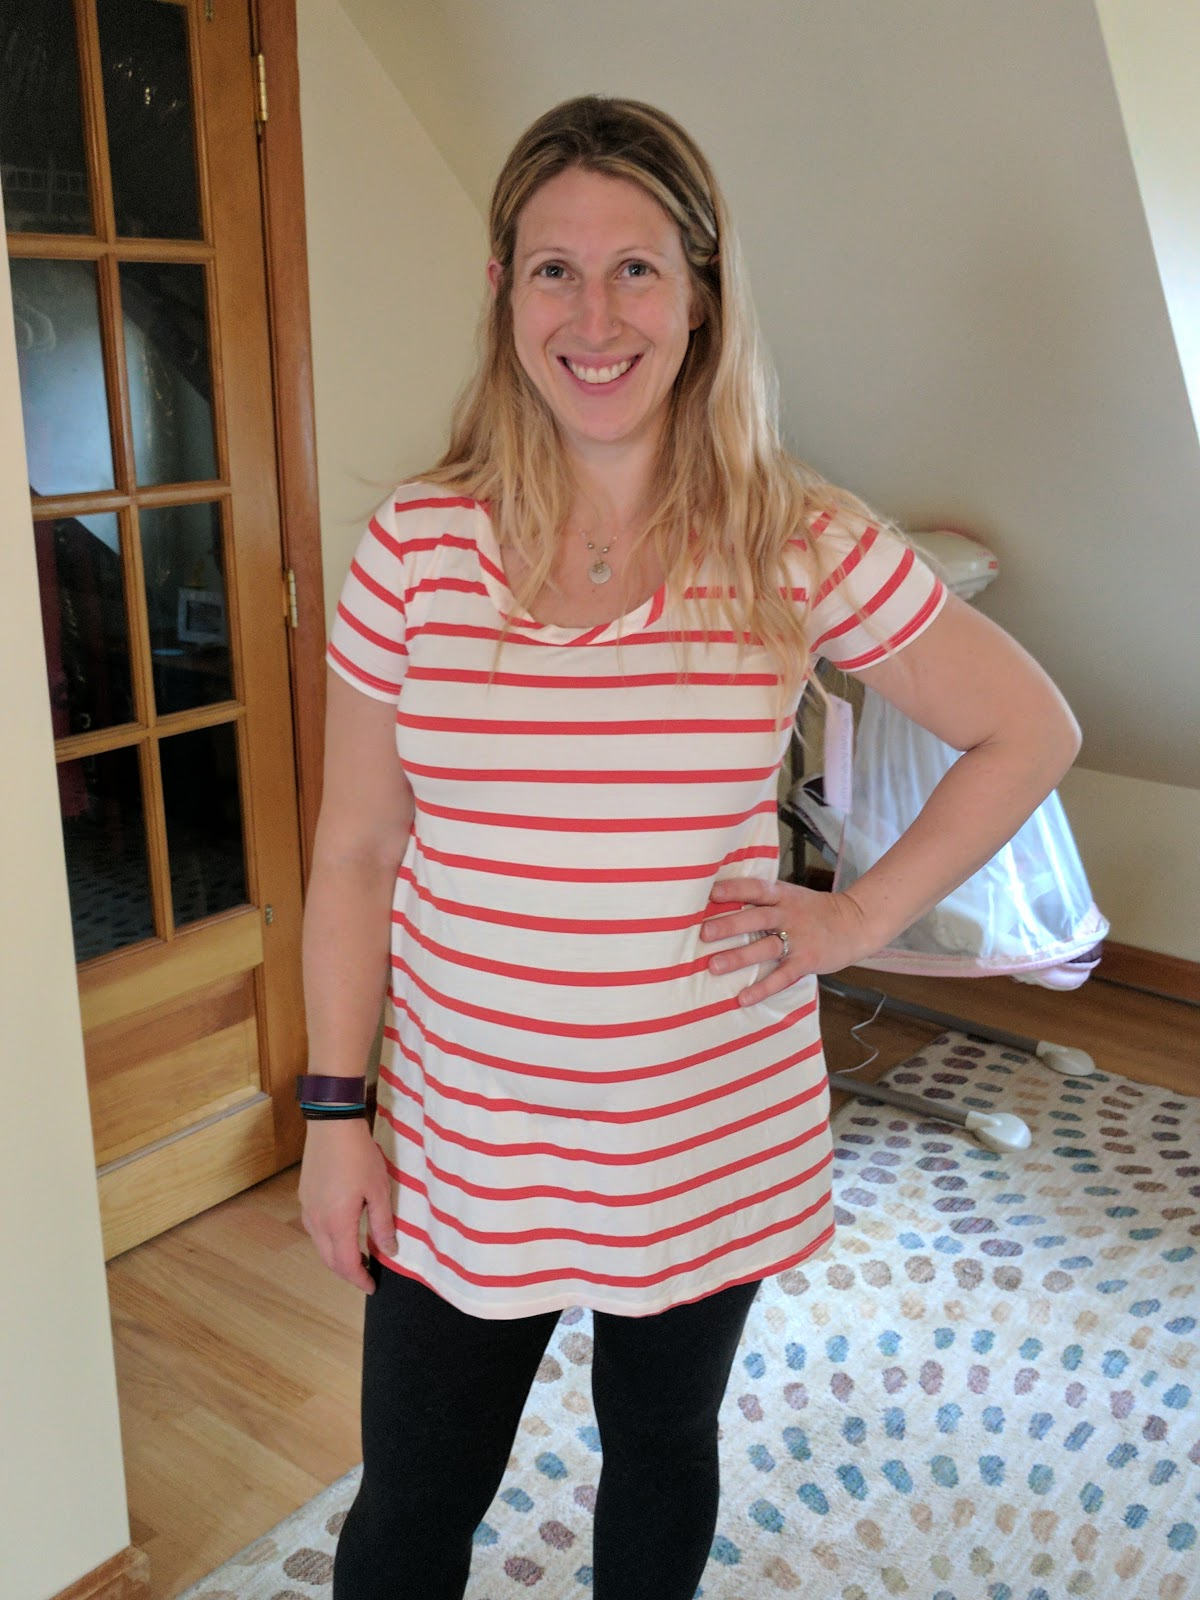 ebecf89d51c Stitch Fix maternity boxes #1 and #2   Combing through the closet